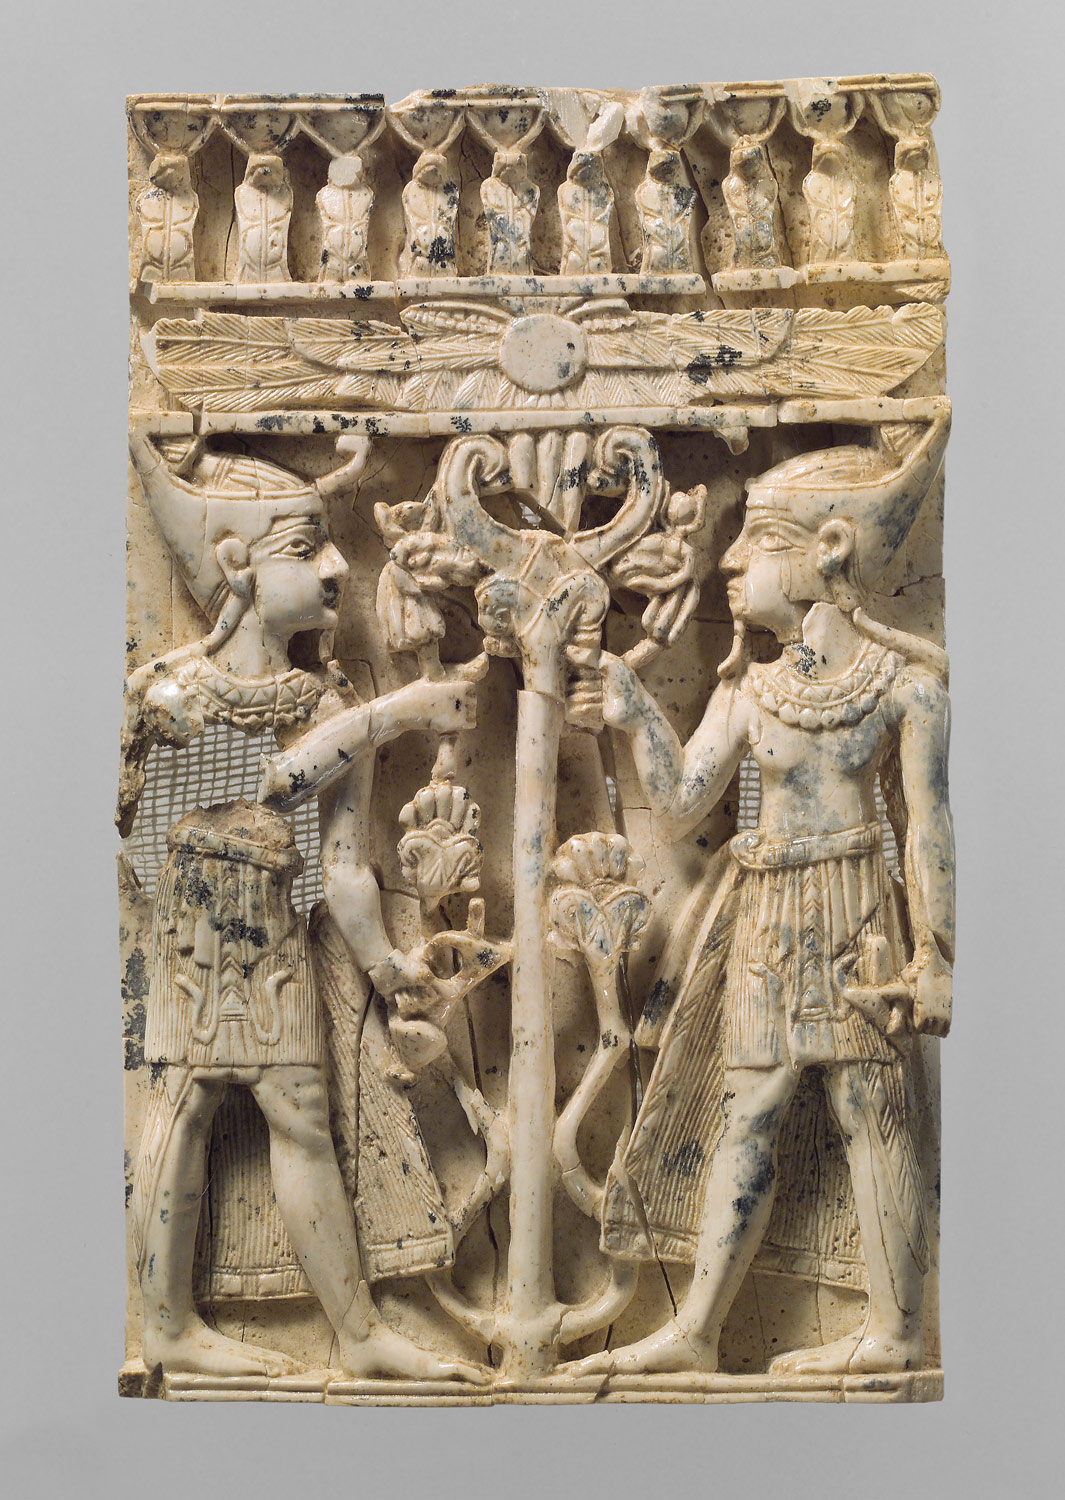 Plaque with pharaonic figures flanking a sacred tree